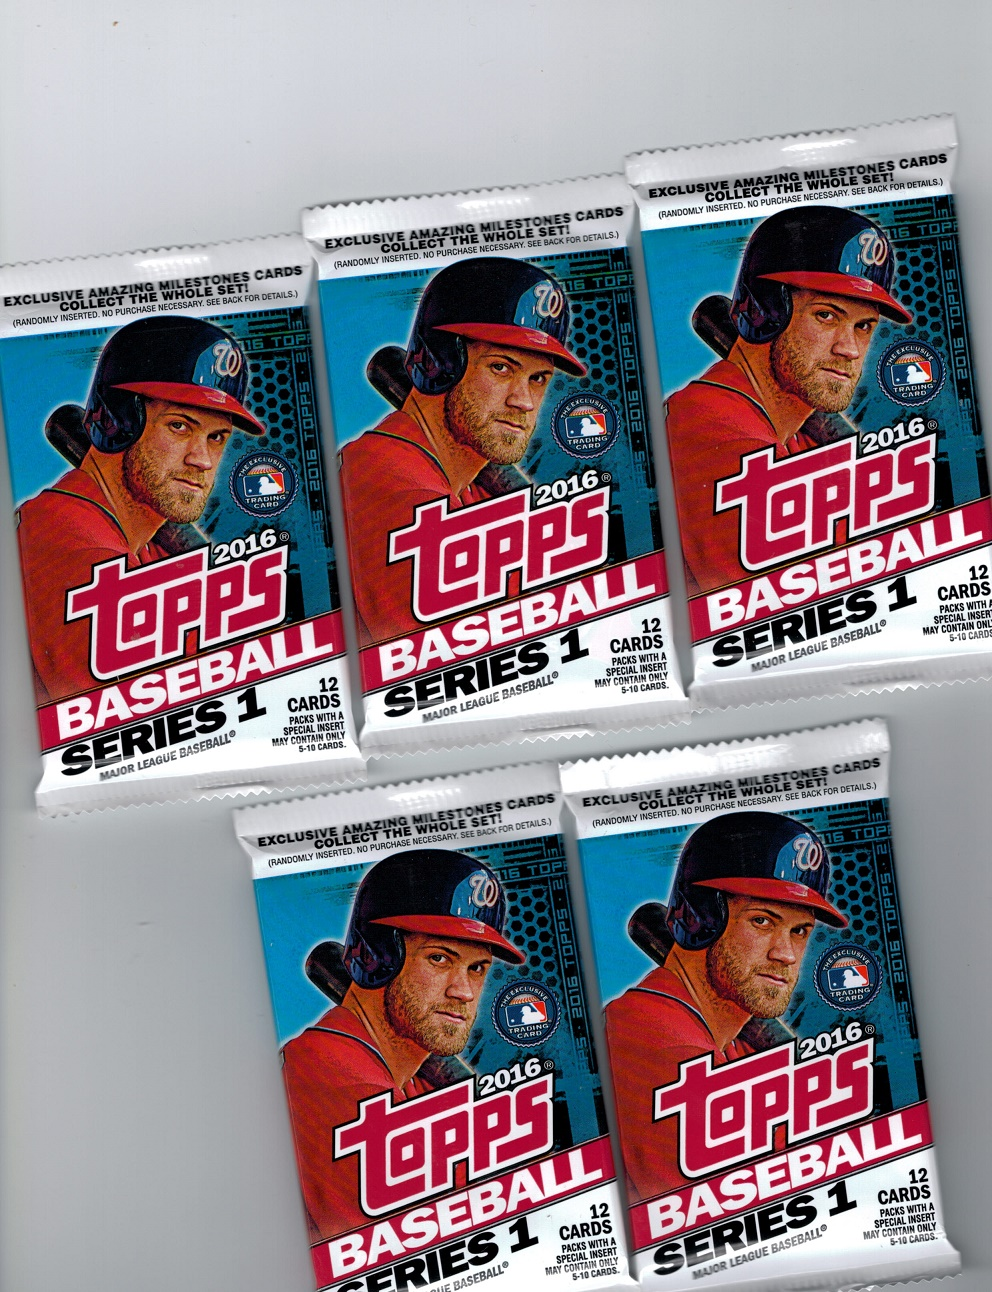 Bdj610s Topps Baseball Card Blog Its Opening Day